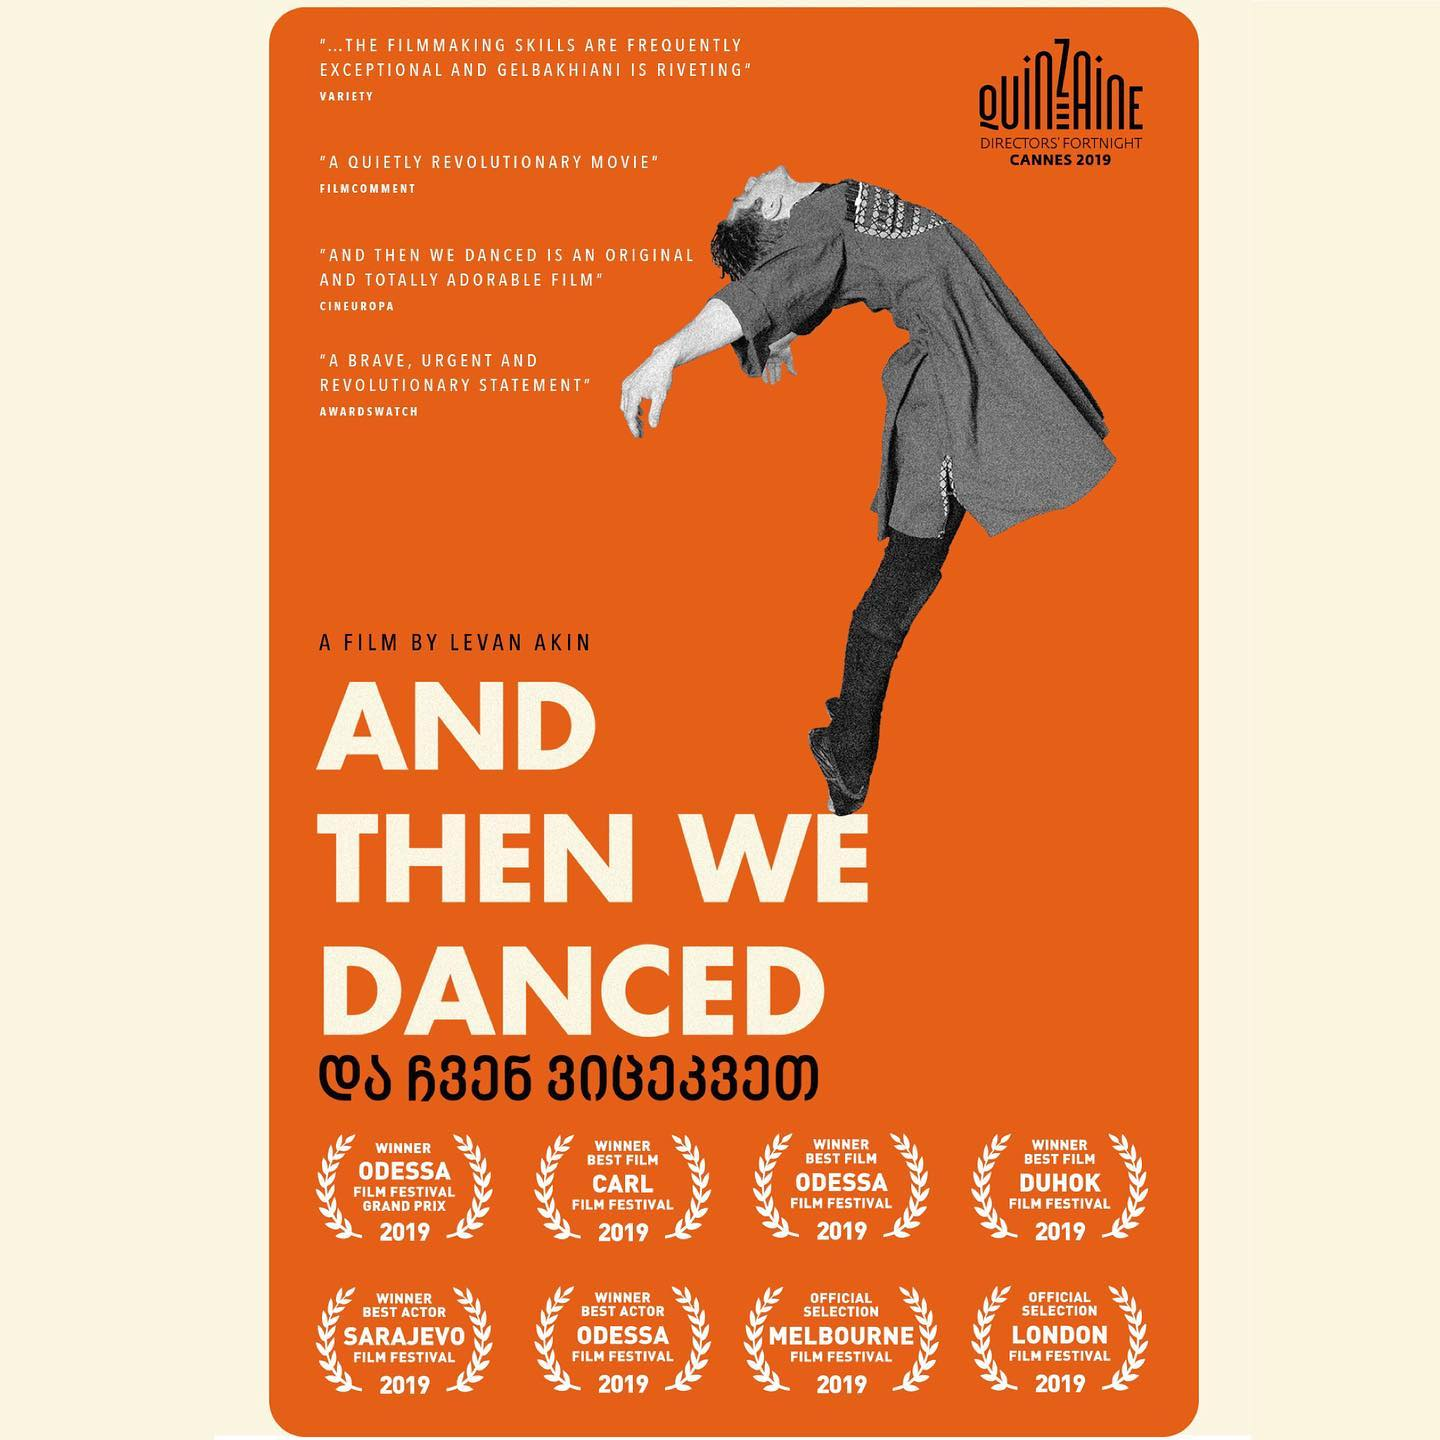 And Then We Danced movie poster